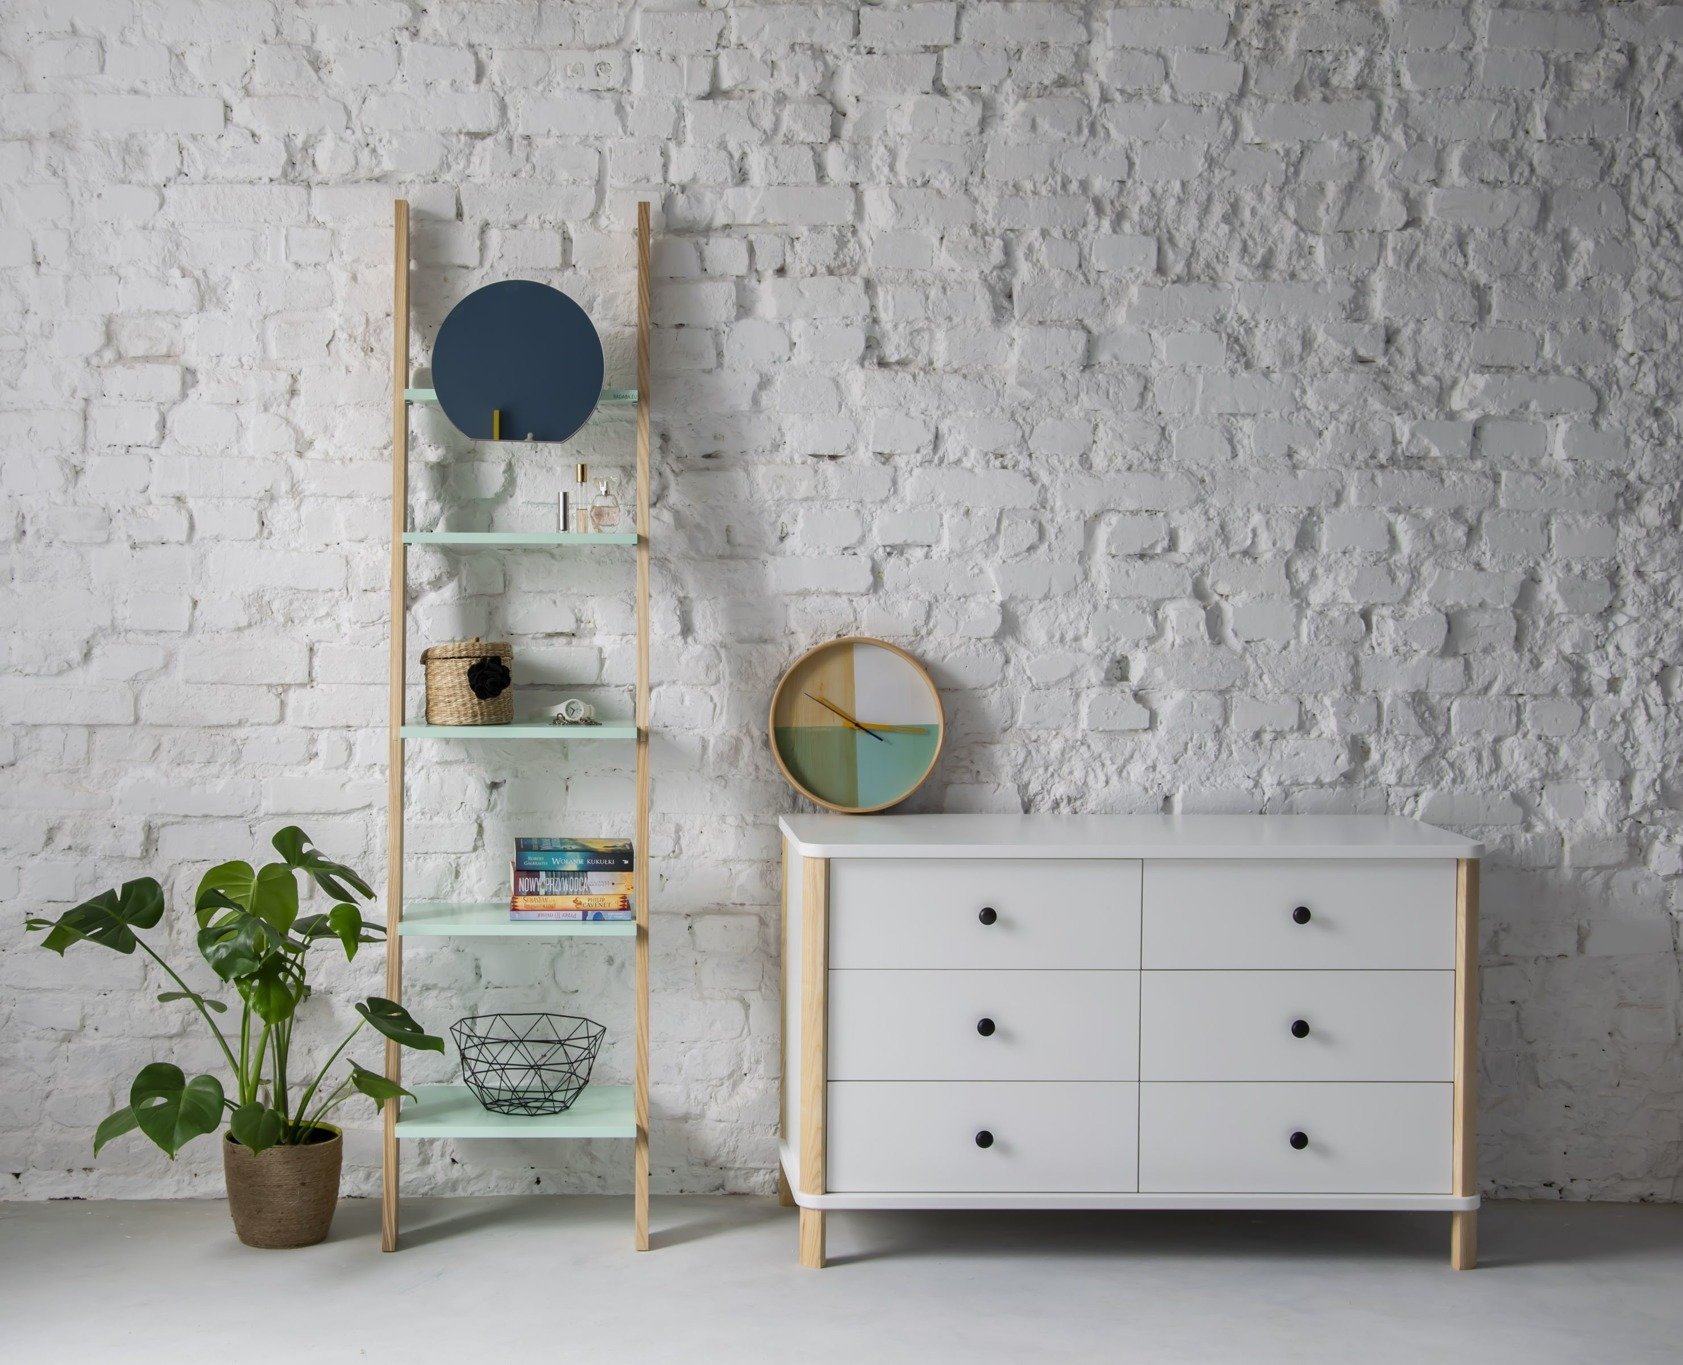 ASHME Small Ladder Shelf With Mirror   Mint